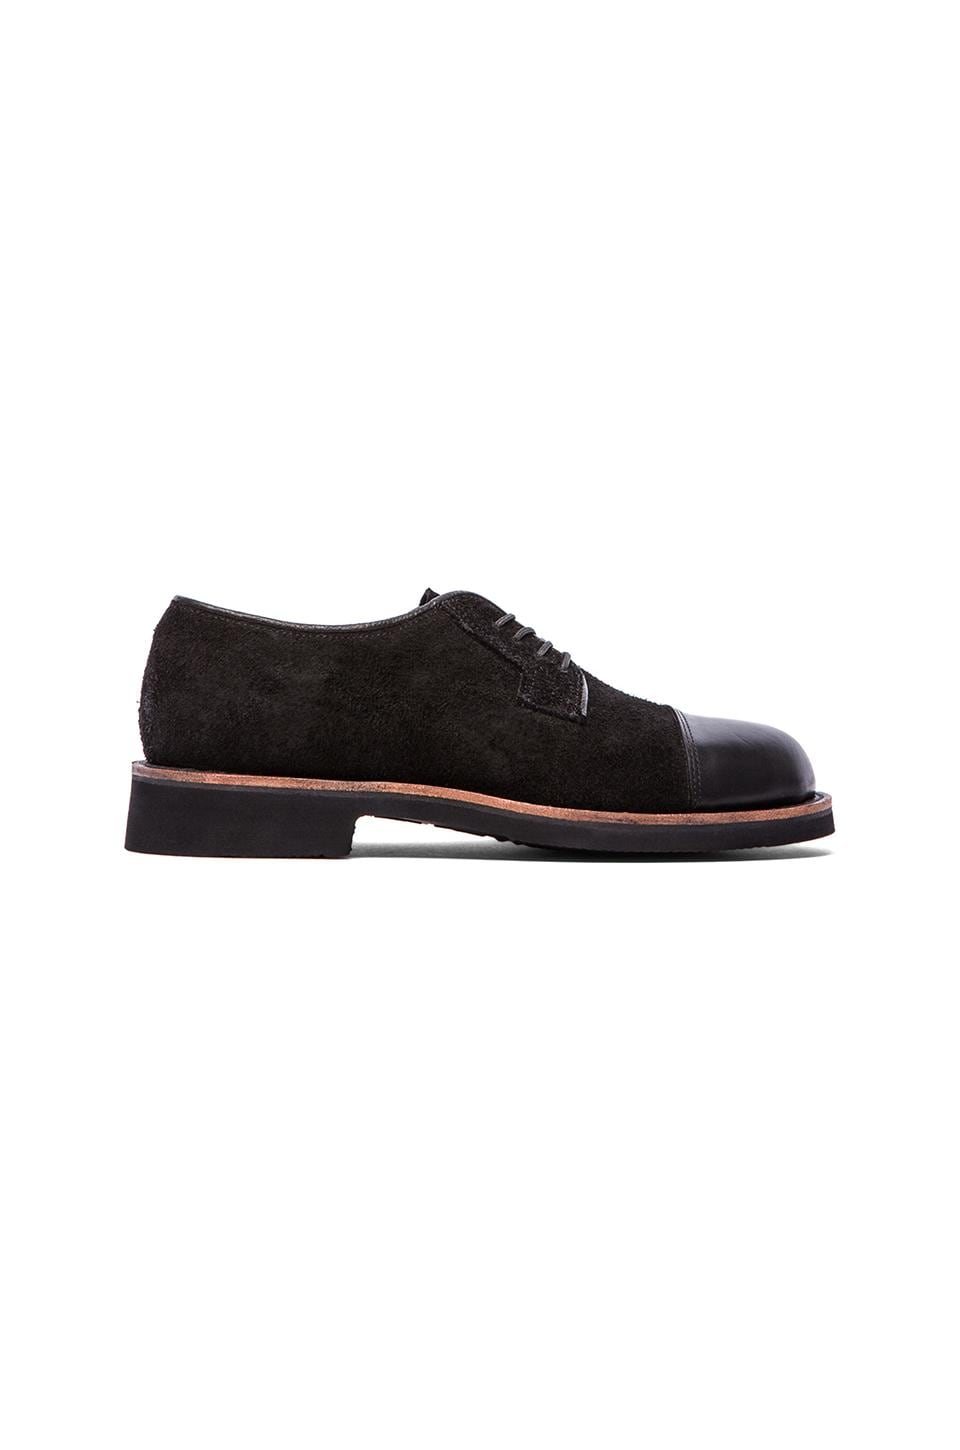 Broken Homme Thomas Cap Toe Oxford in Black